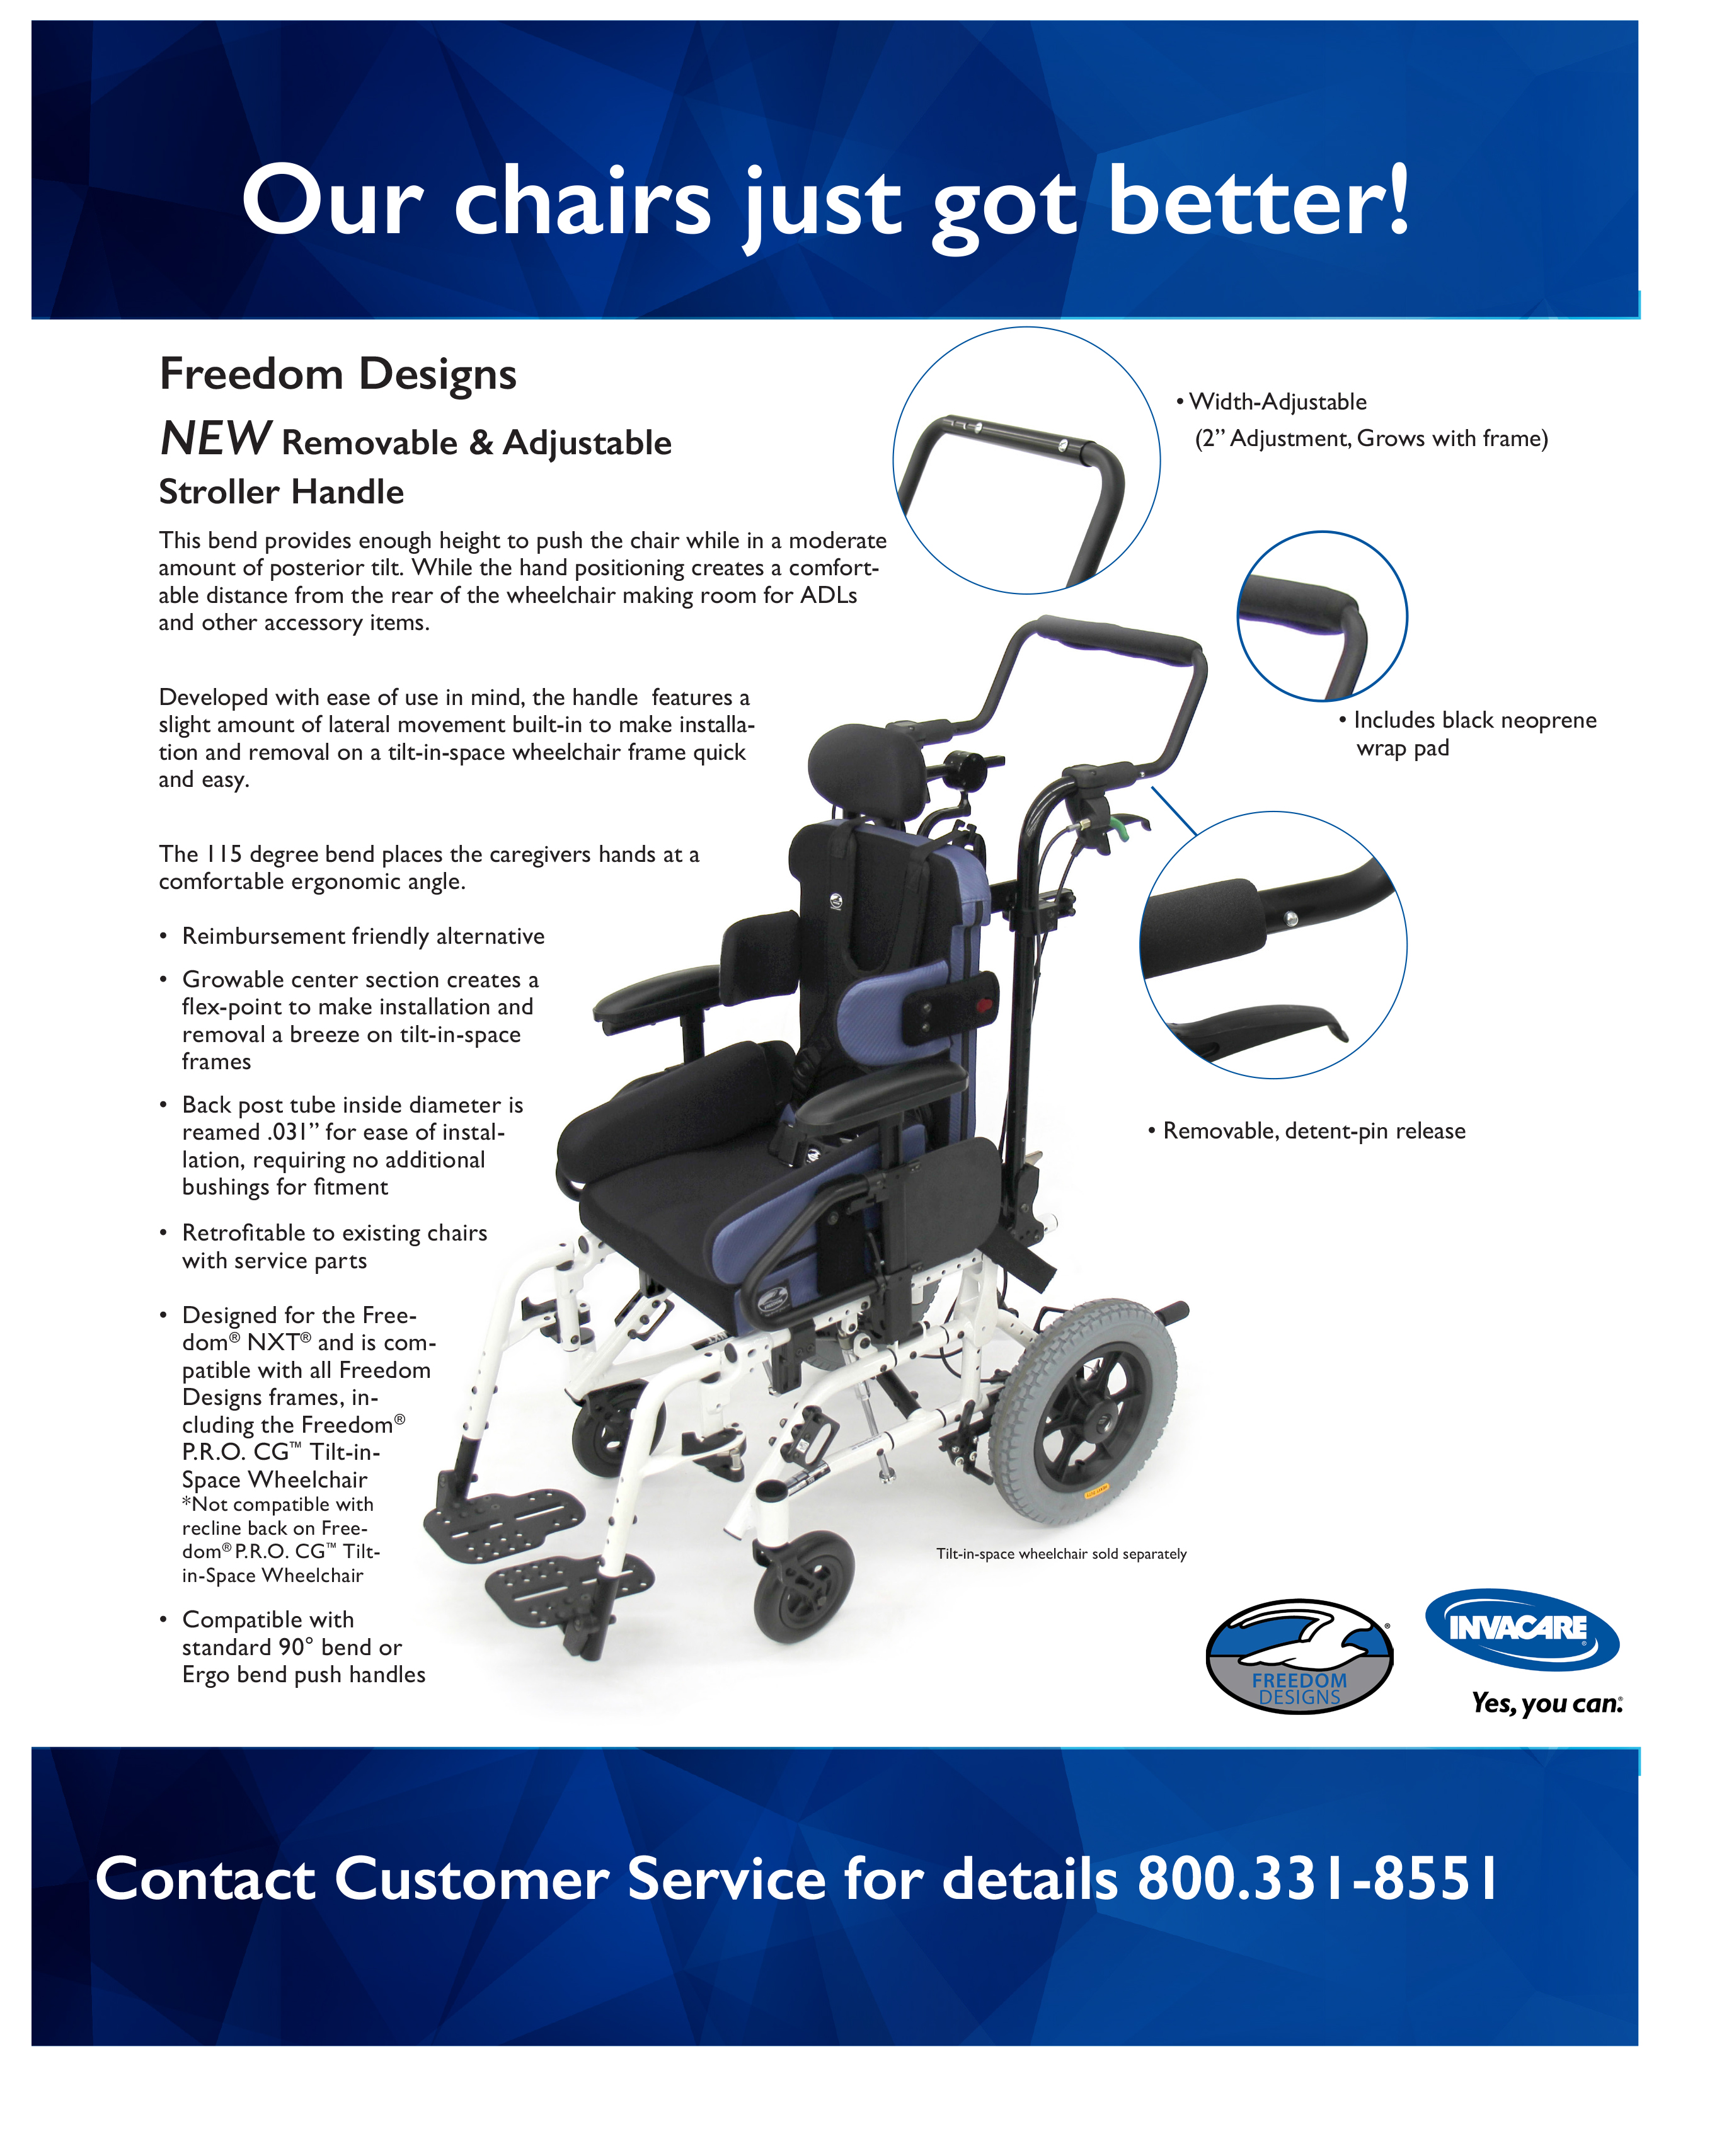 Freedom Designs, Inc  - Custom Wheelchairs and Seating